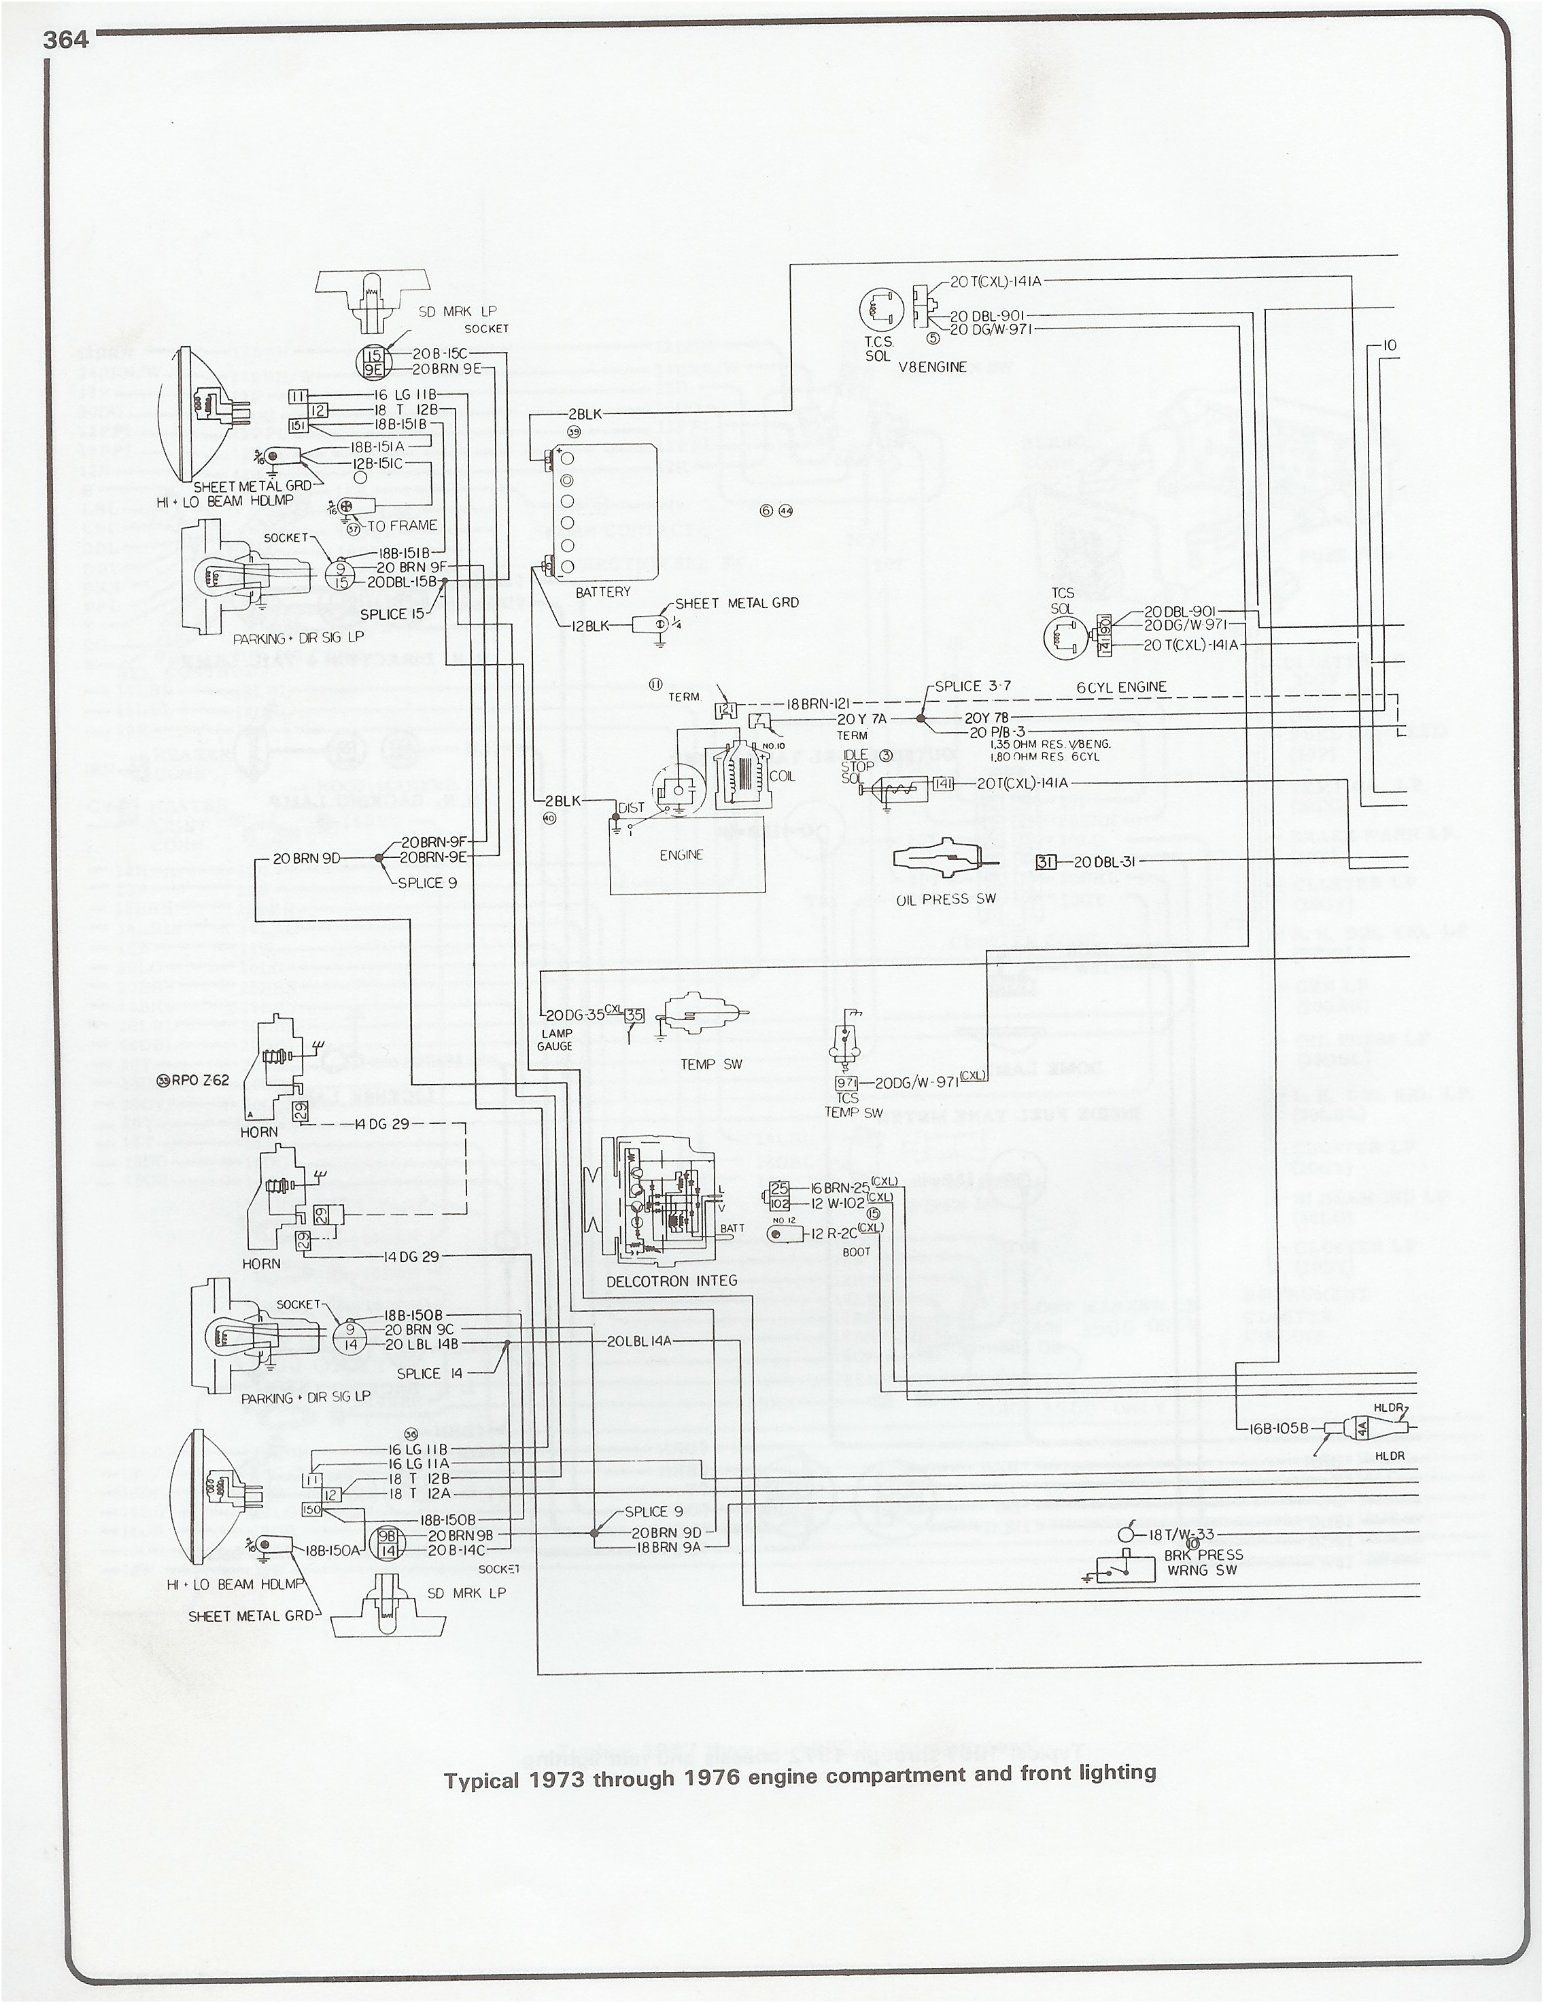 Wiring Diagram 1973 - 1976 Chevy Pickup #Chevy #Wiring #Diagram 1976 Chevy  Truck